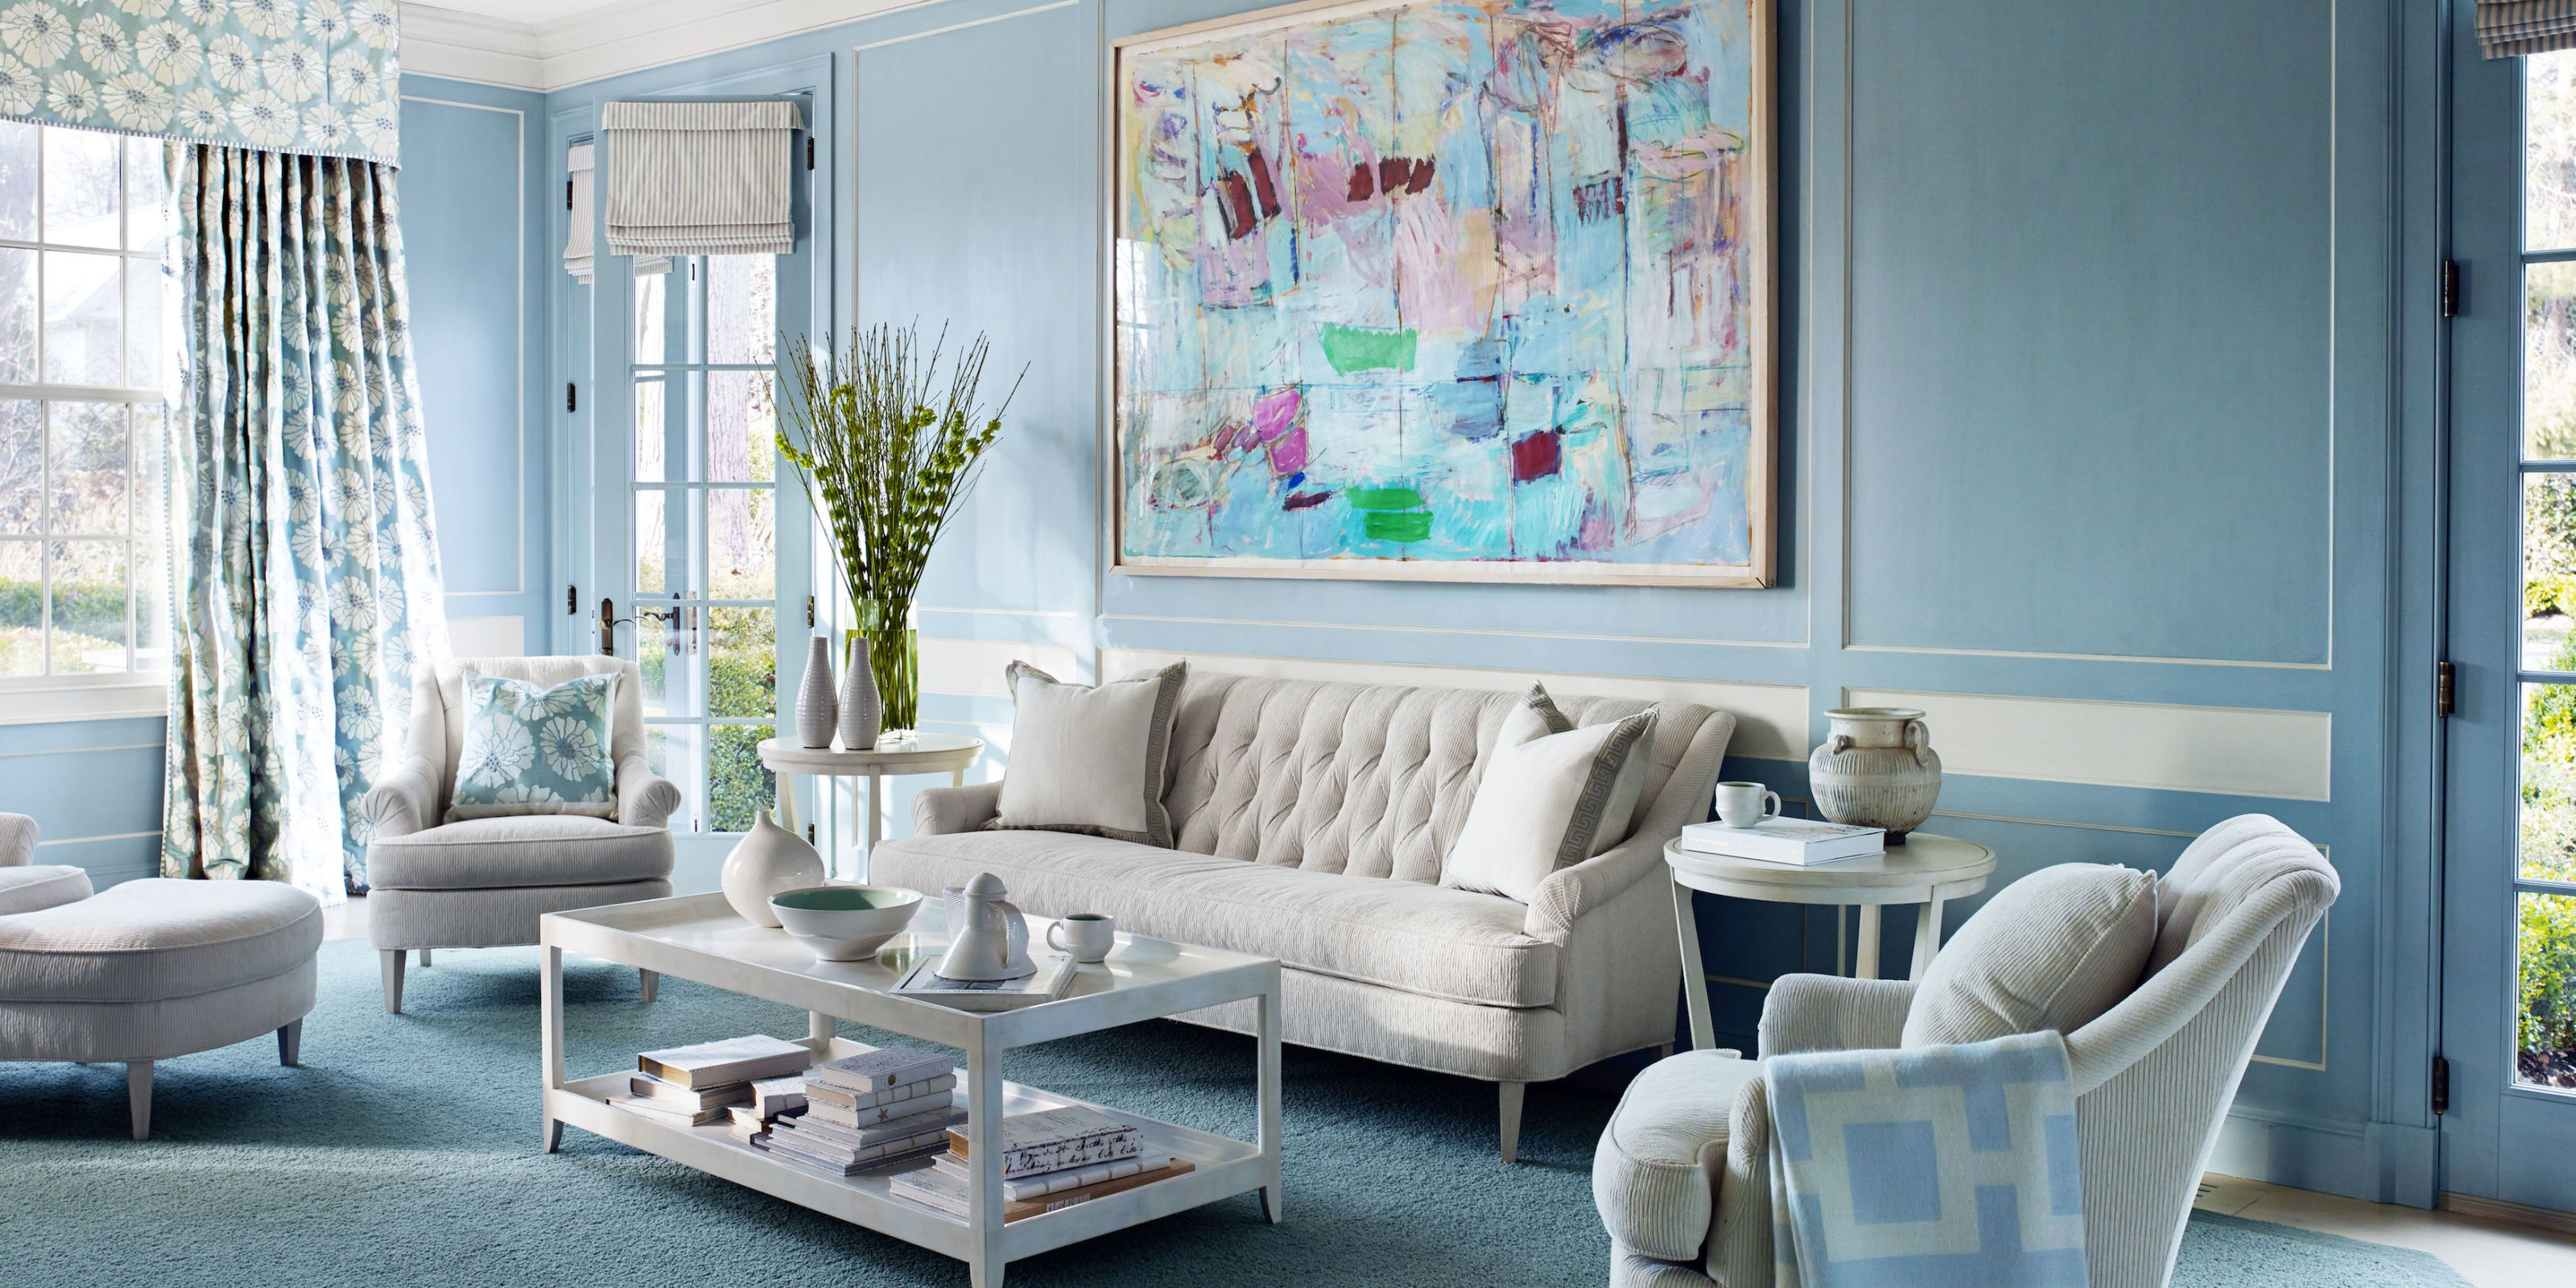 A 1920s House Embraces the Power of Blue